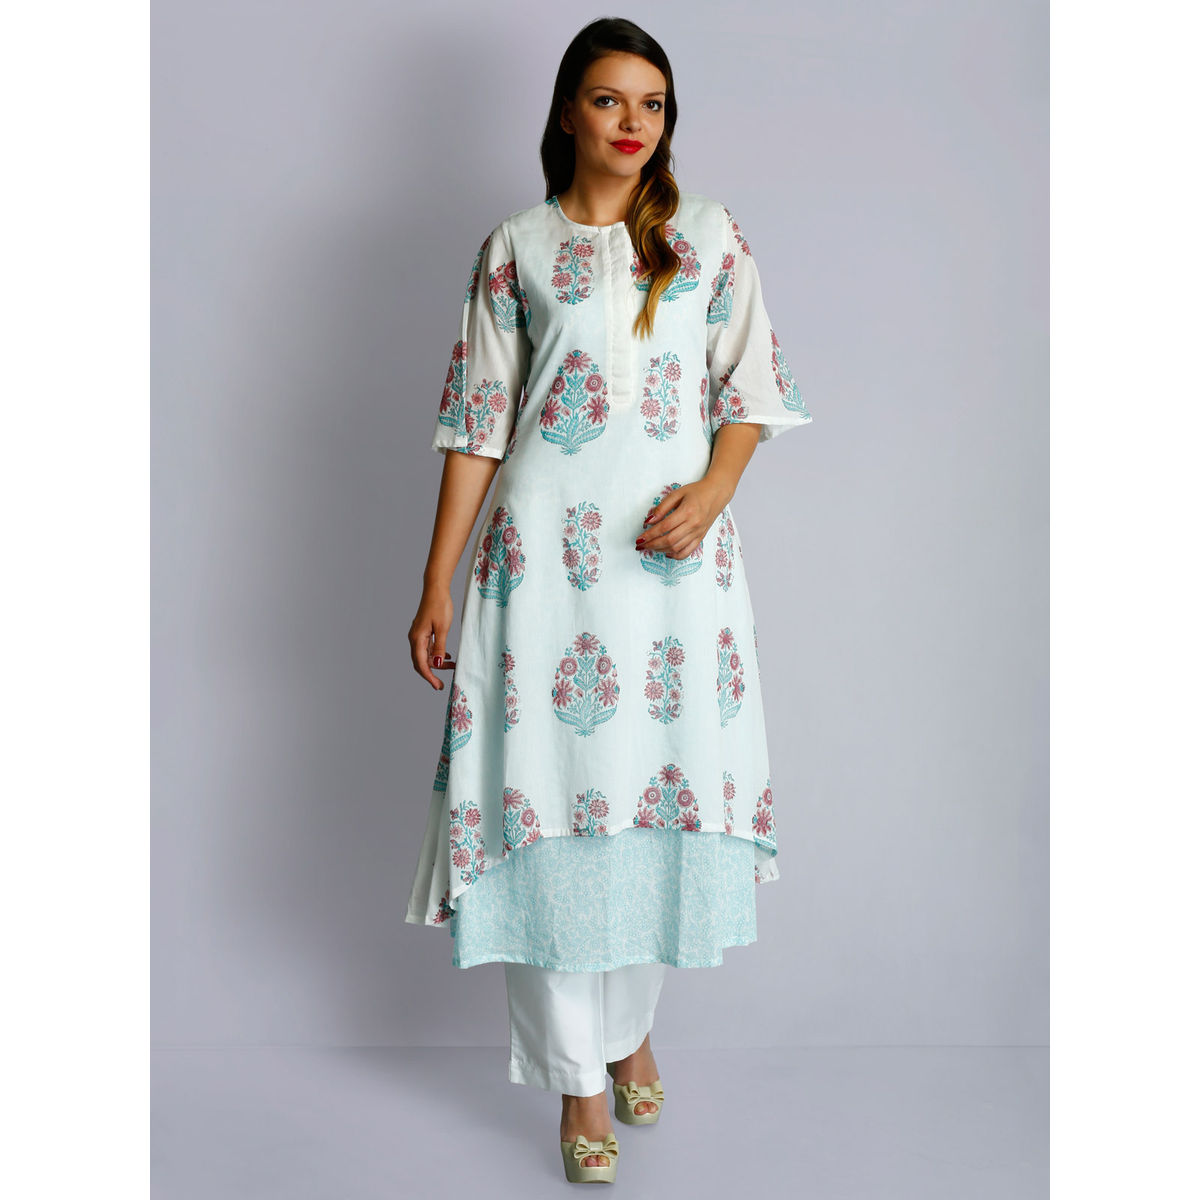 White cotton voile round neck blue-pink hand block printed layered tunic